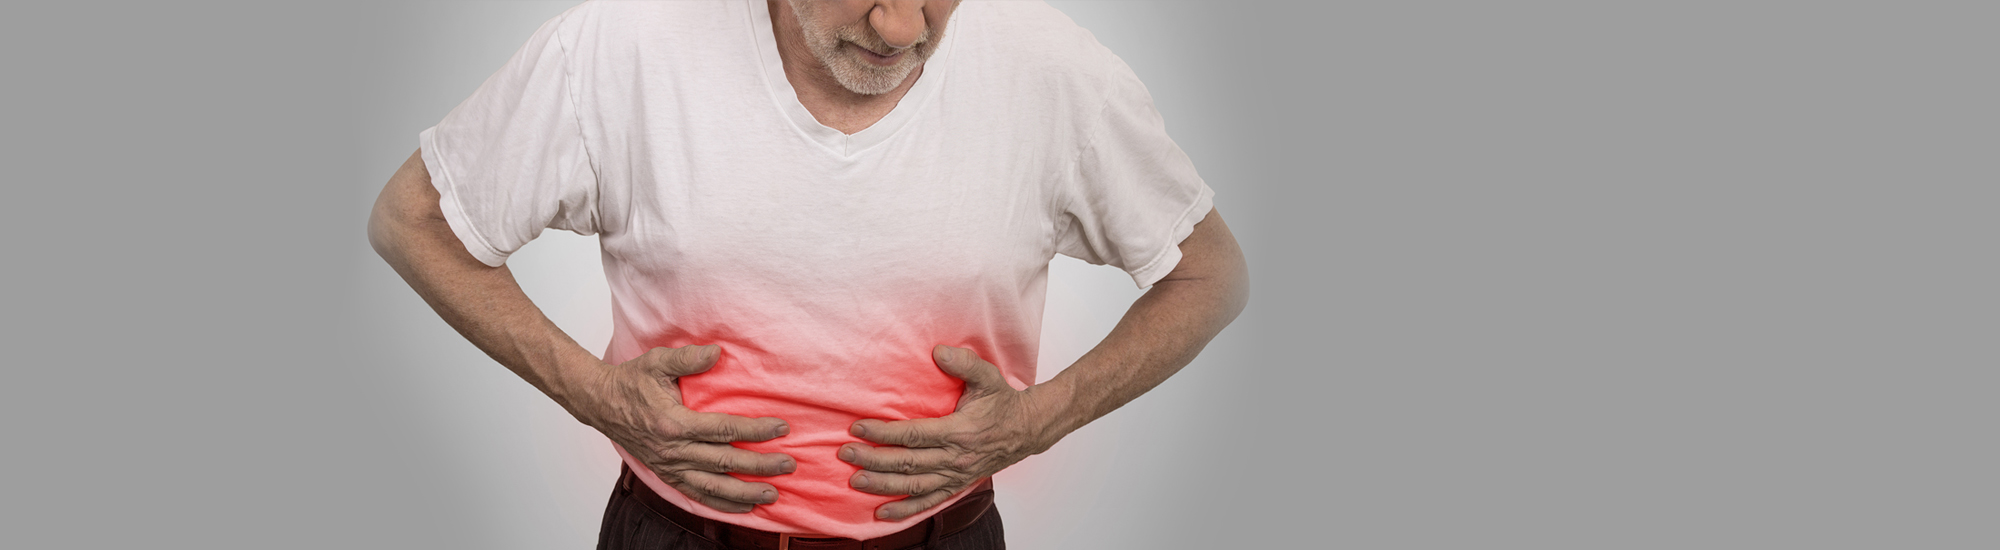 Ayurvedic treatment for Bowel control problems -Fecal incontinence- FAQs